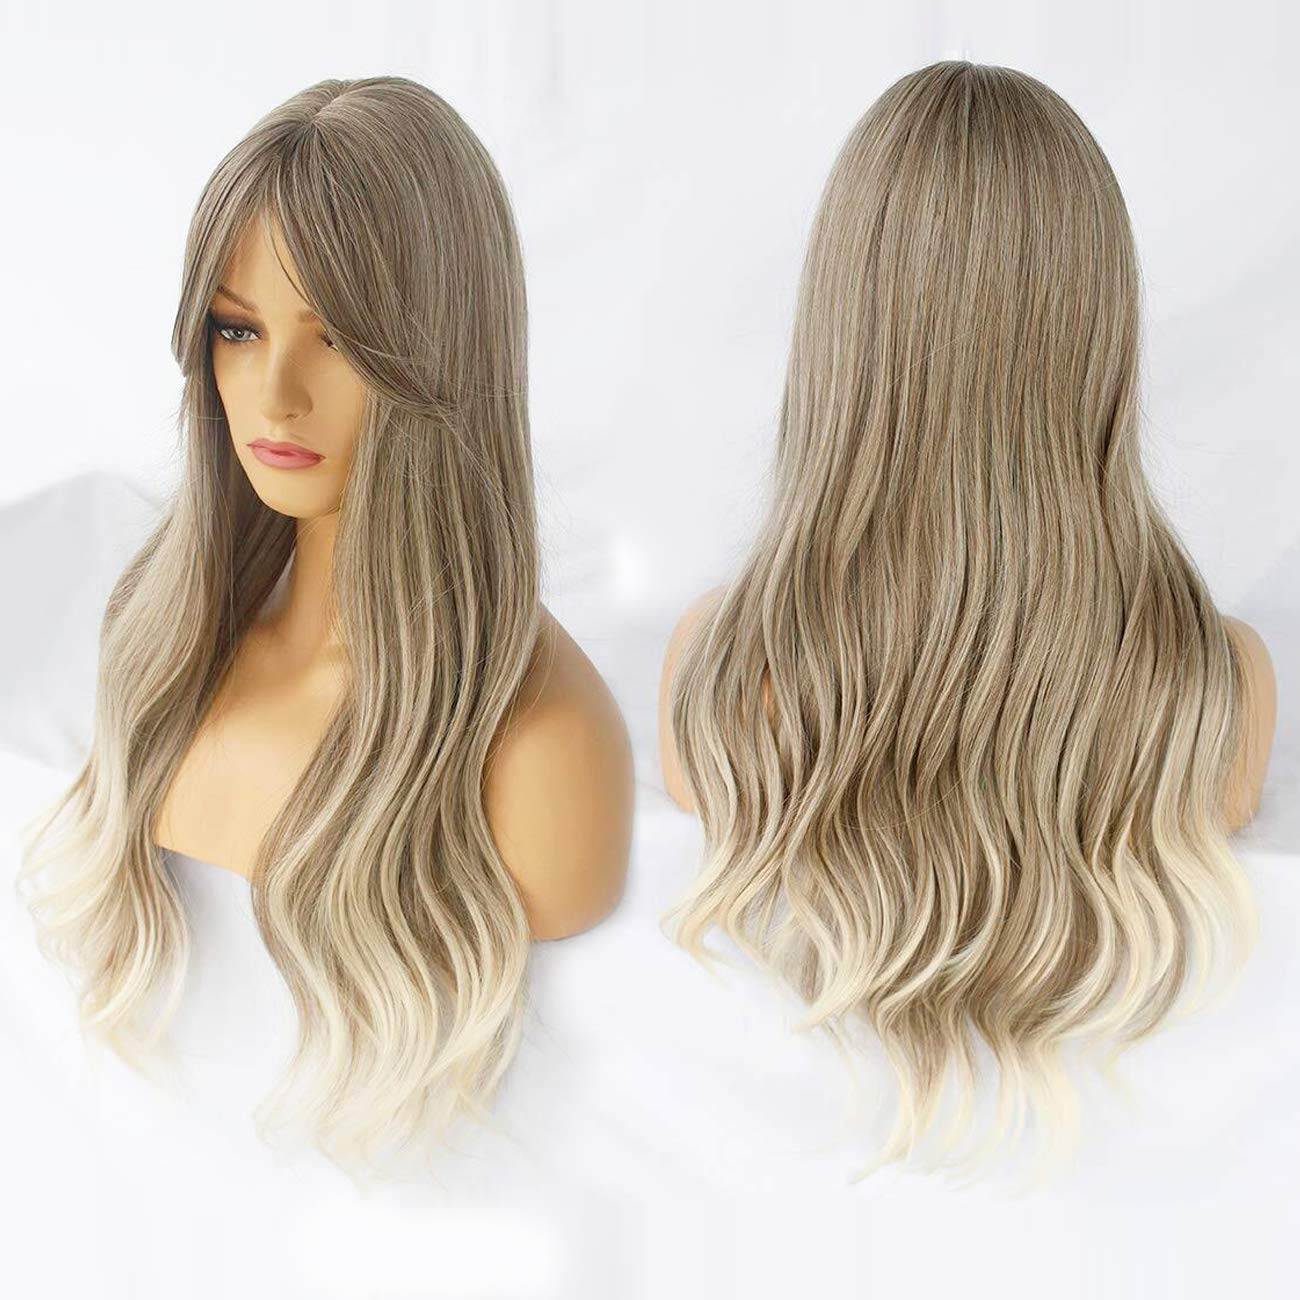 Ebingoo Blonde ombre Wig with bangs for Women Long Kinky Curly Soft Synthetic Heat Resistant Fiber Wigs for daily wear for cosplay